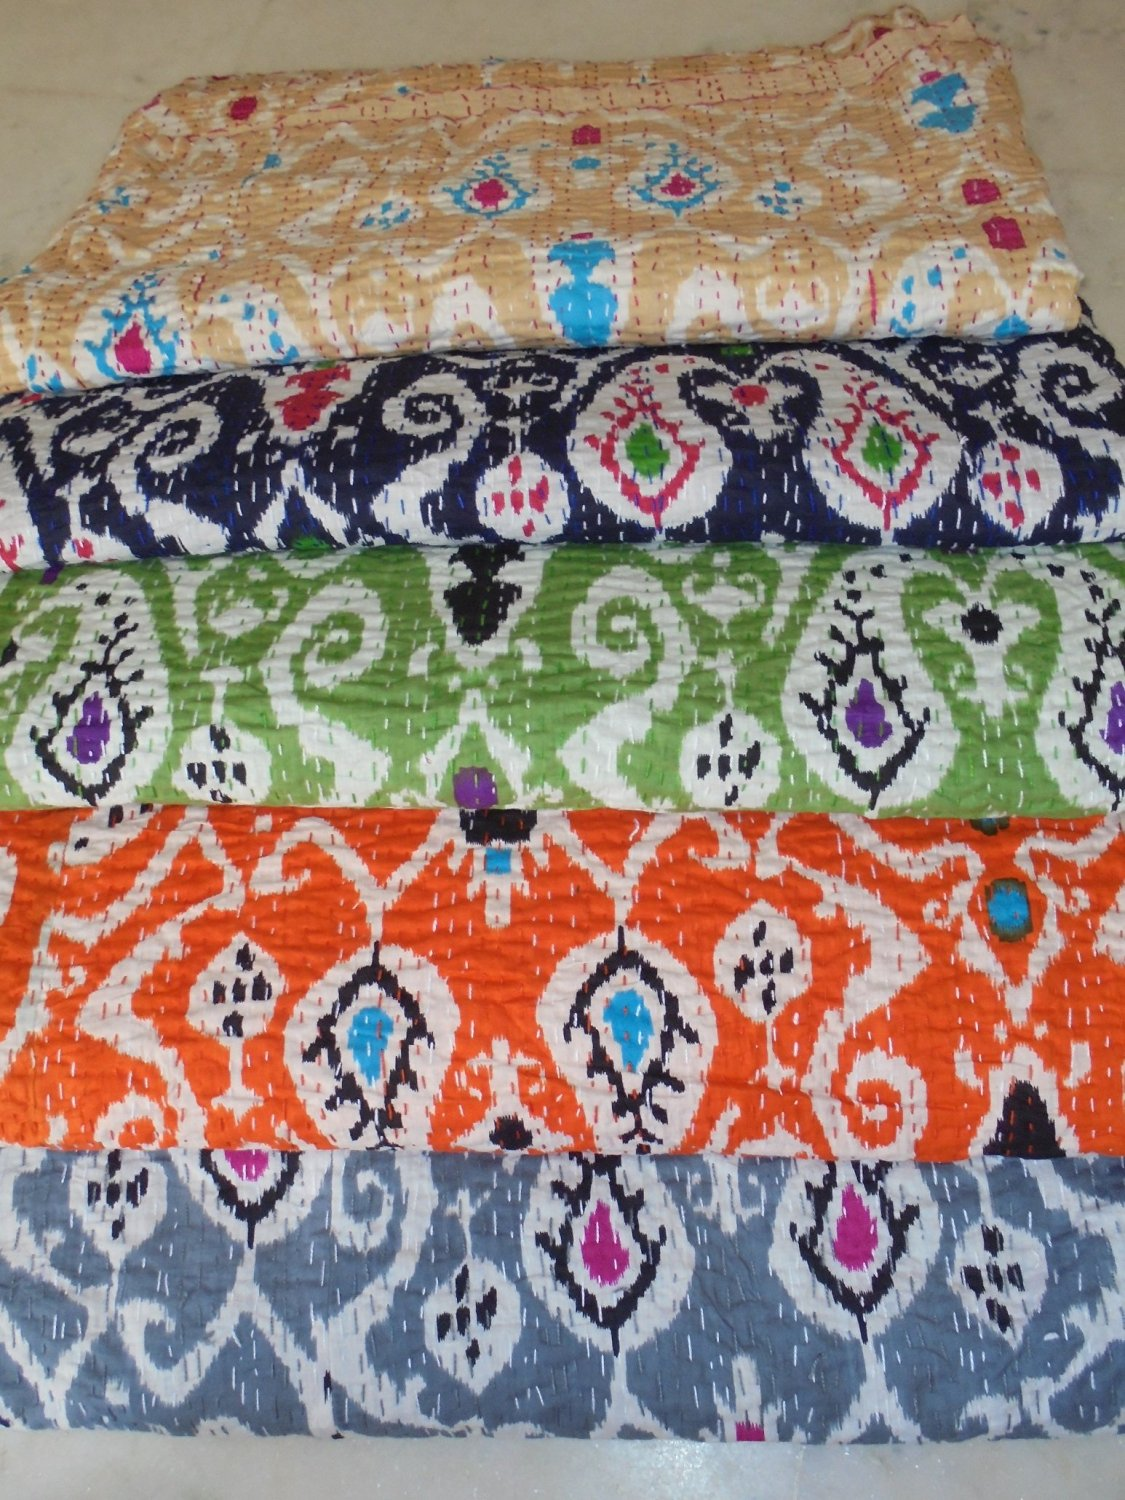 "Wholesale Lot Five Pieces Bed Covers - Bedcover - Cotton Bed Cover with Ikat Pattern - Kantha Bedspread - Kantha Quilt in Hand Stitched Pattern - Handcrafted and Hand Sewn - Light Cotton Throw Blanket- Coverlet - Boho Chic Bedspreads 108"" X 90"""